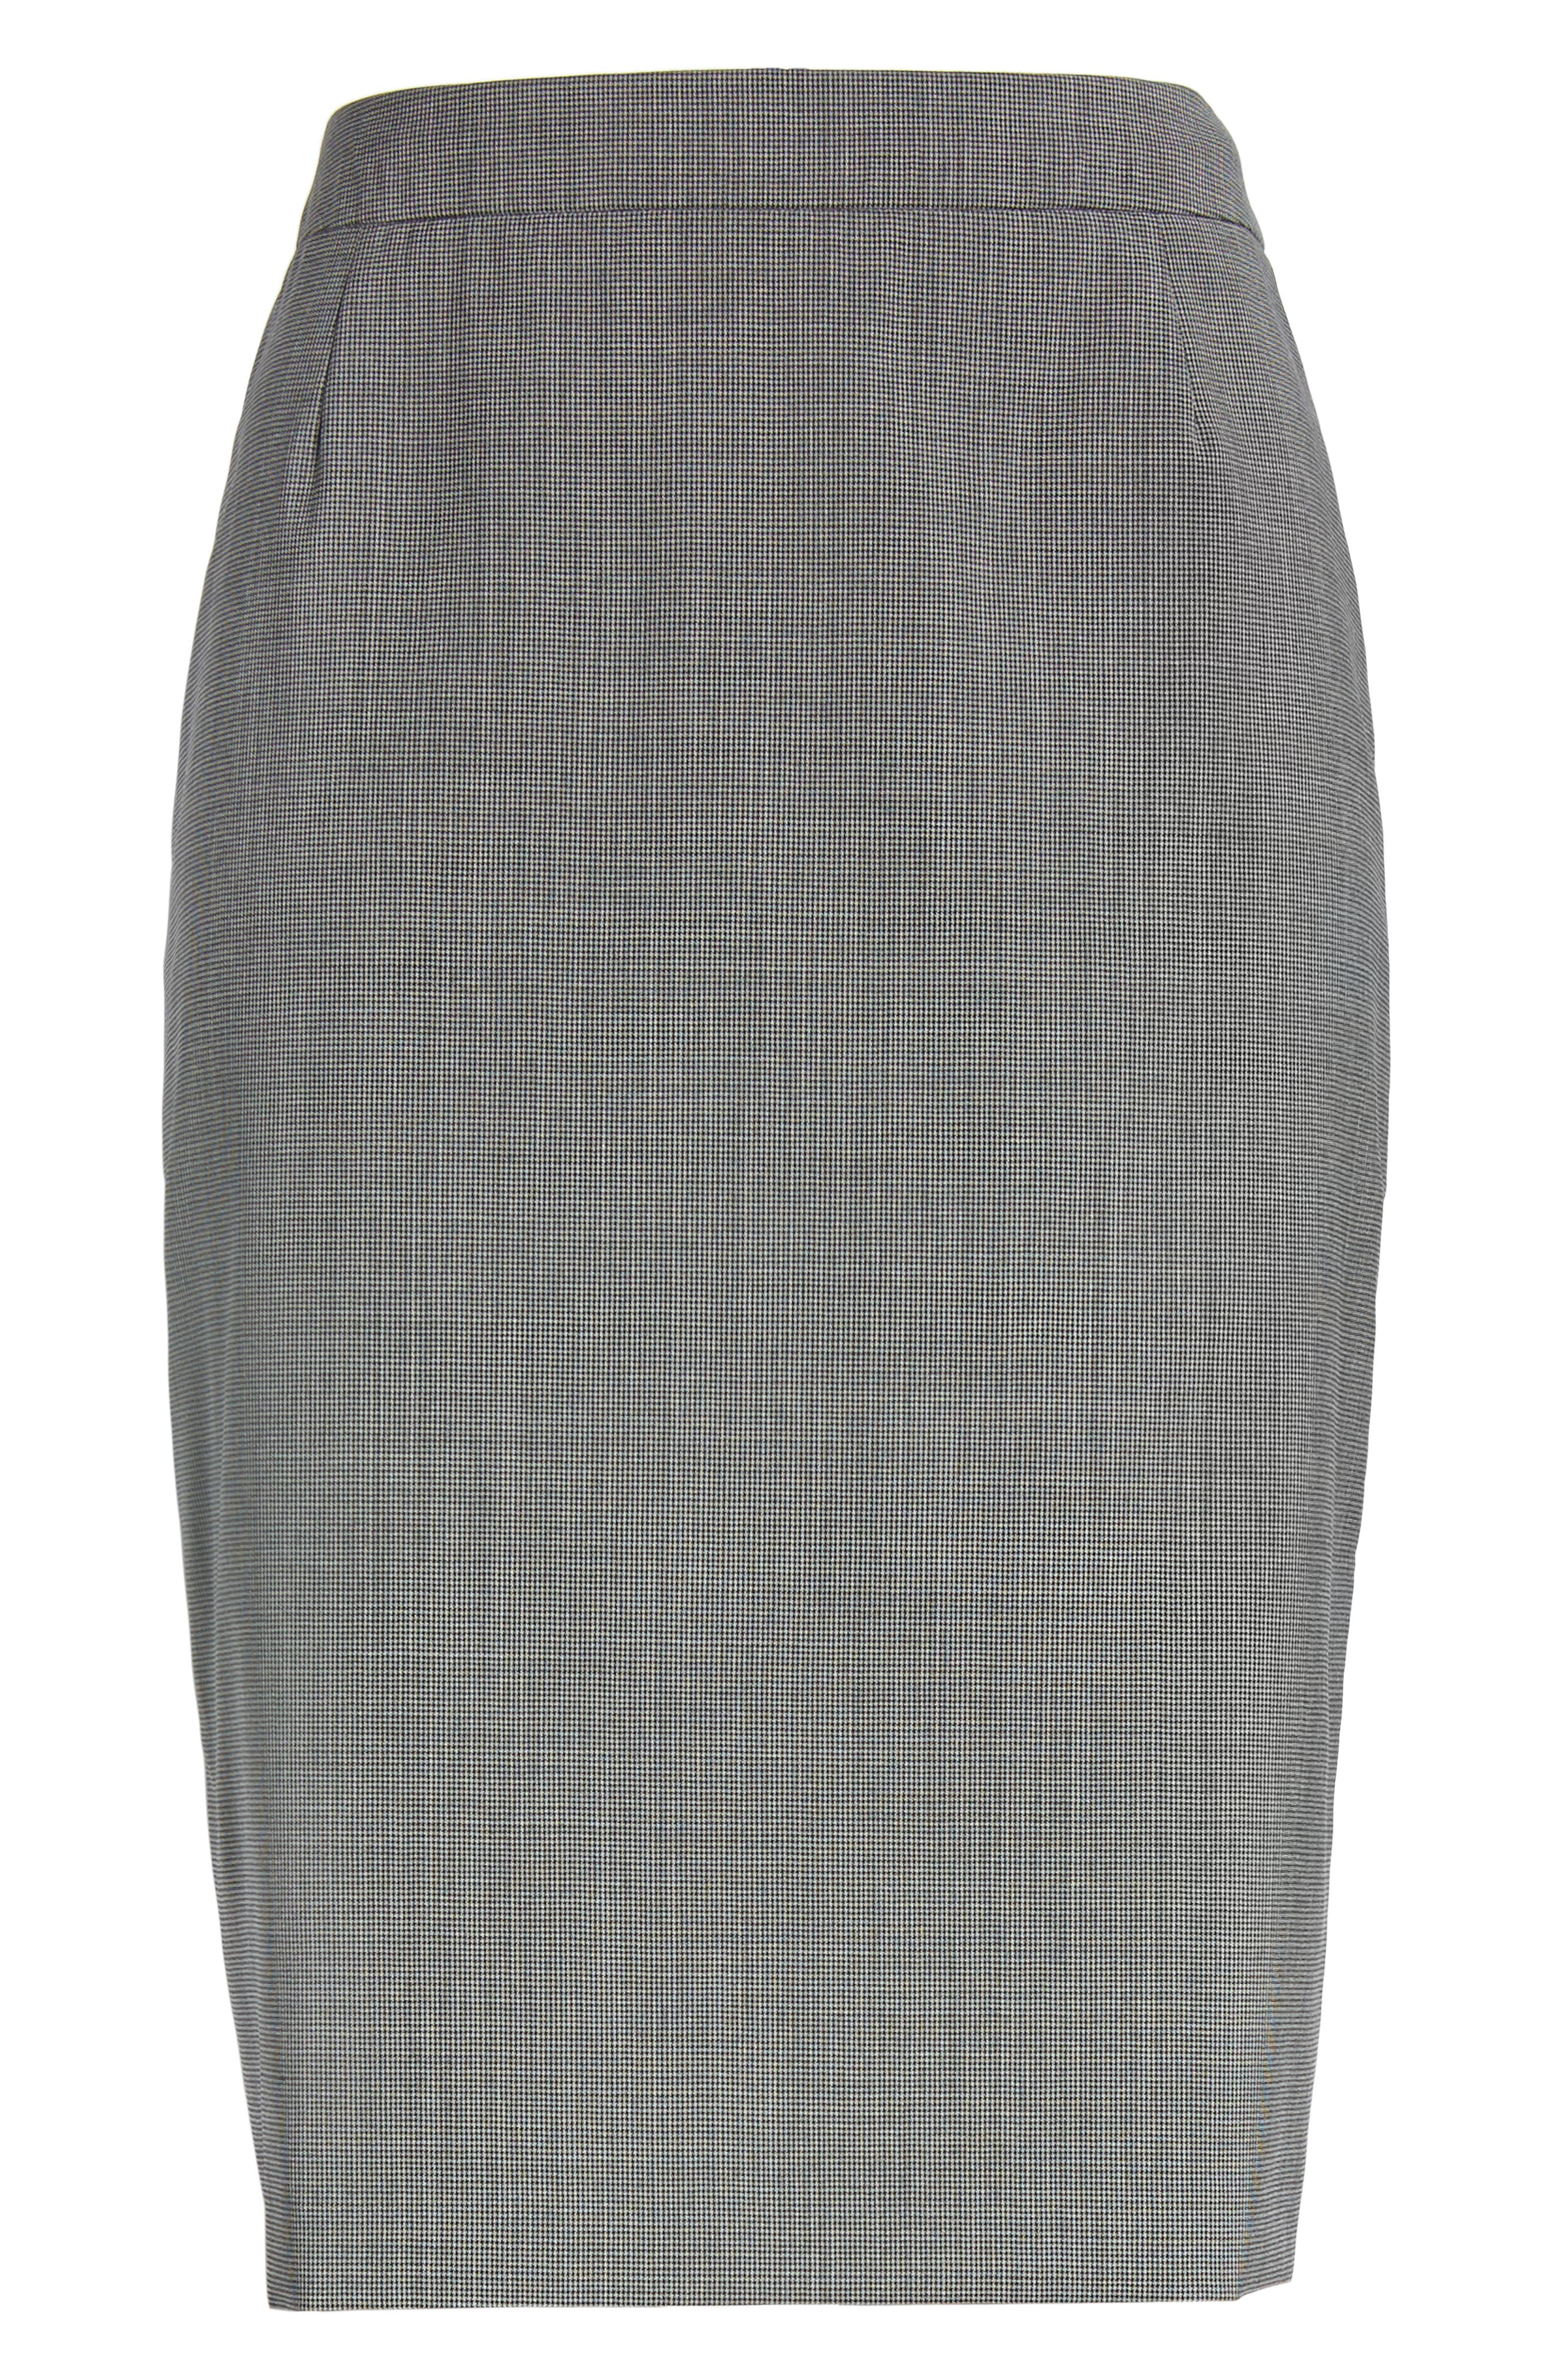 Vimena Mini Houndstooth Stretch Wool Pencil Skirt,                             Alternate thumbnail 6, color,                             060